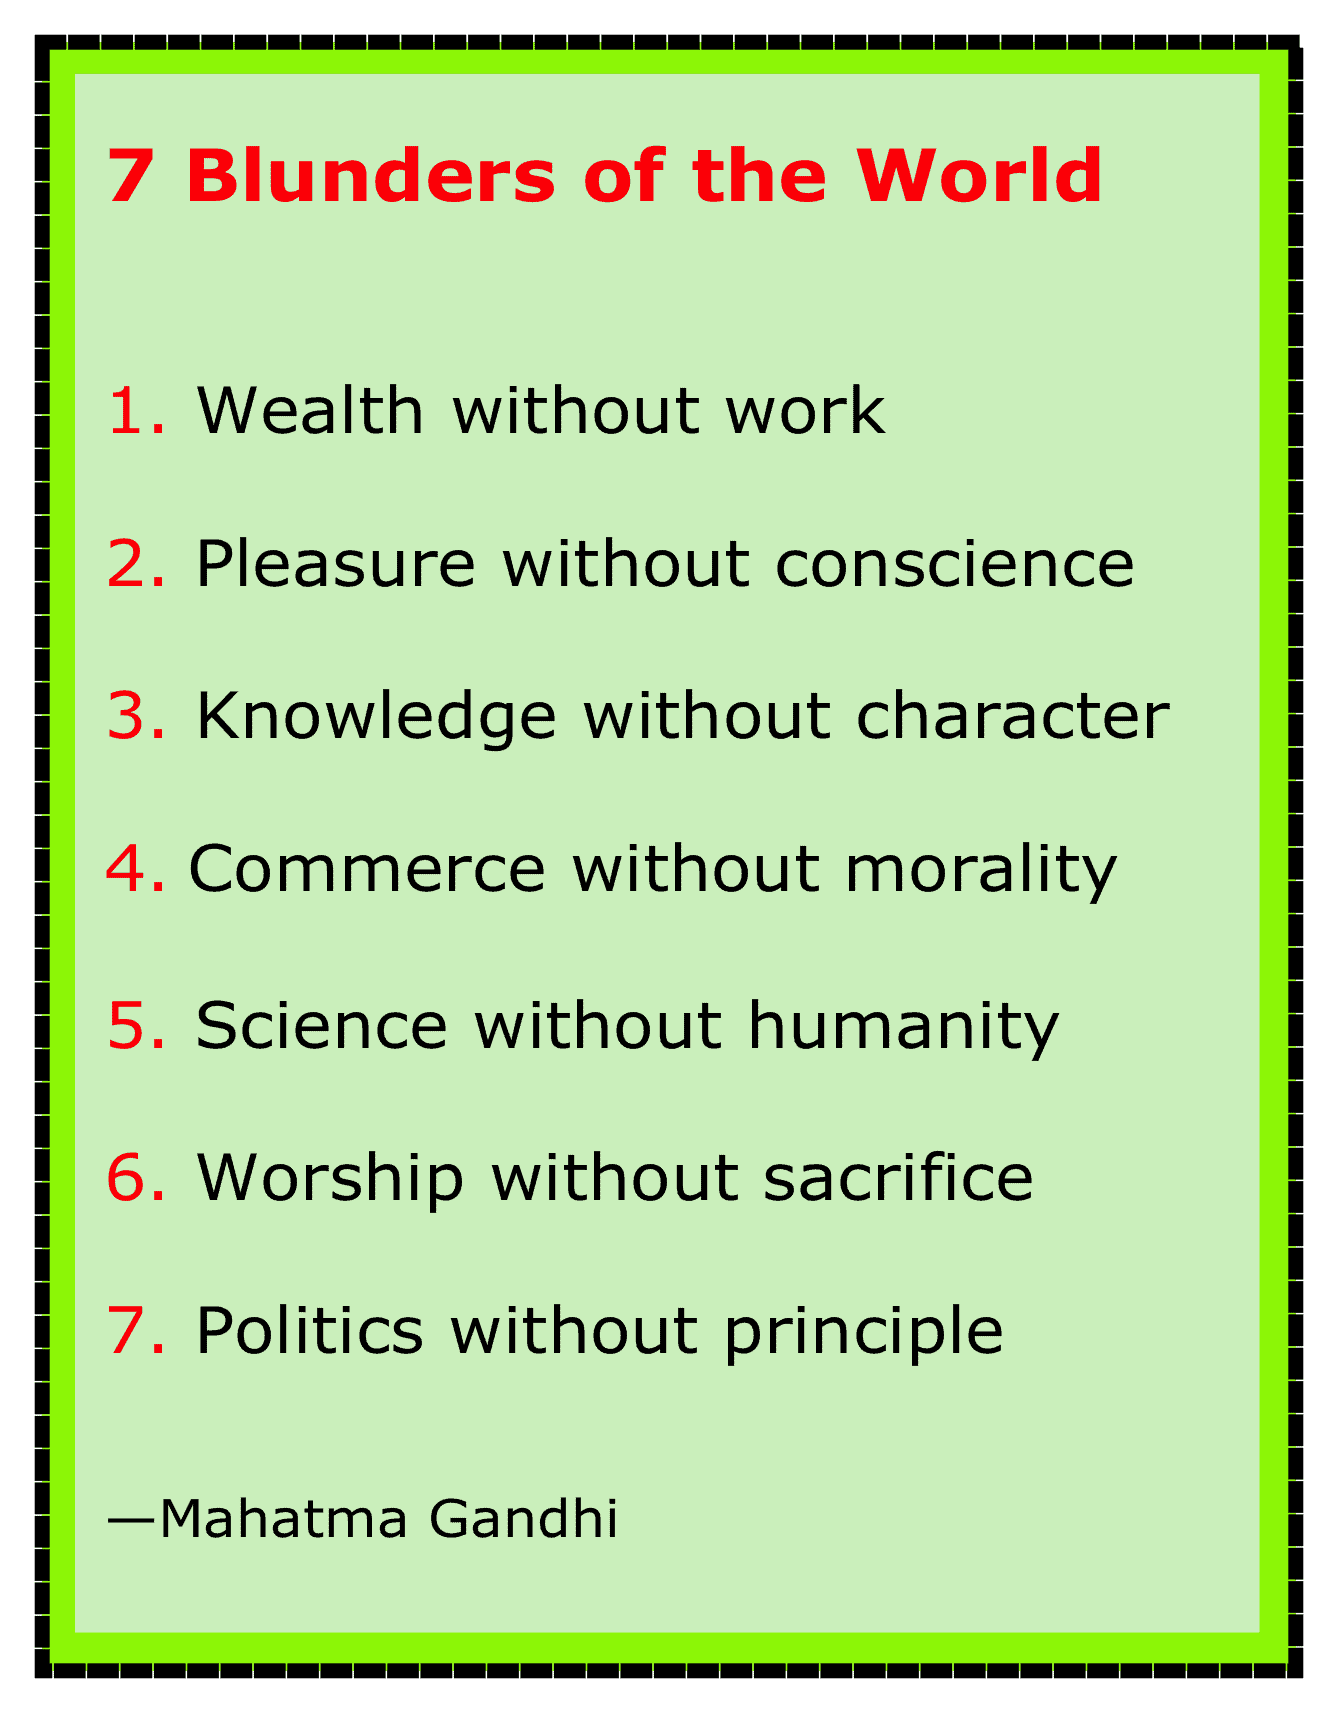 7 blunders of world